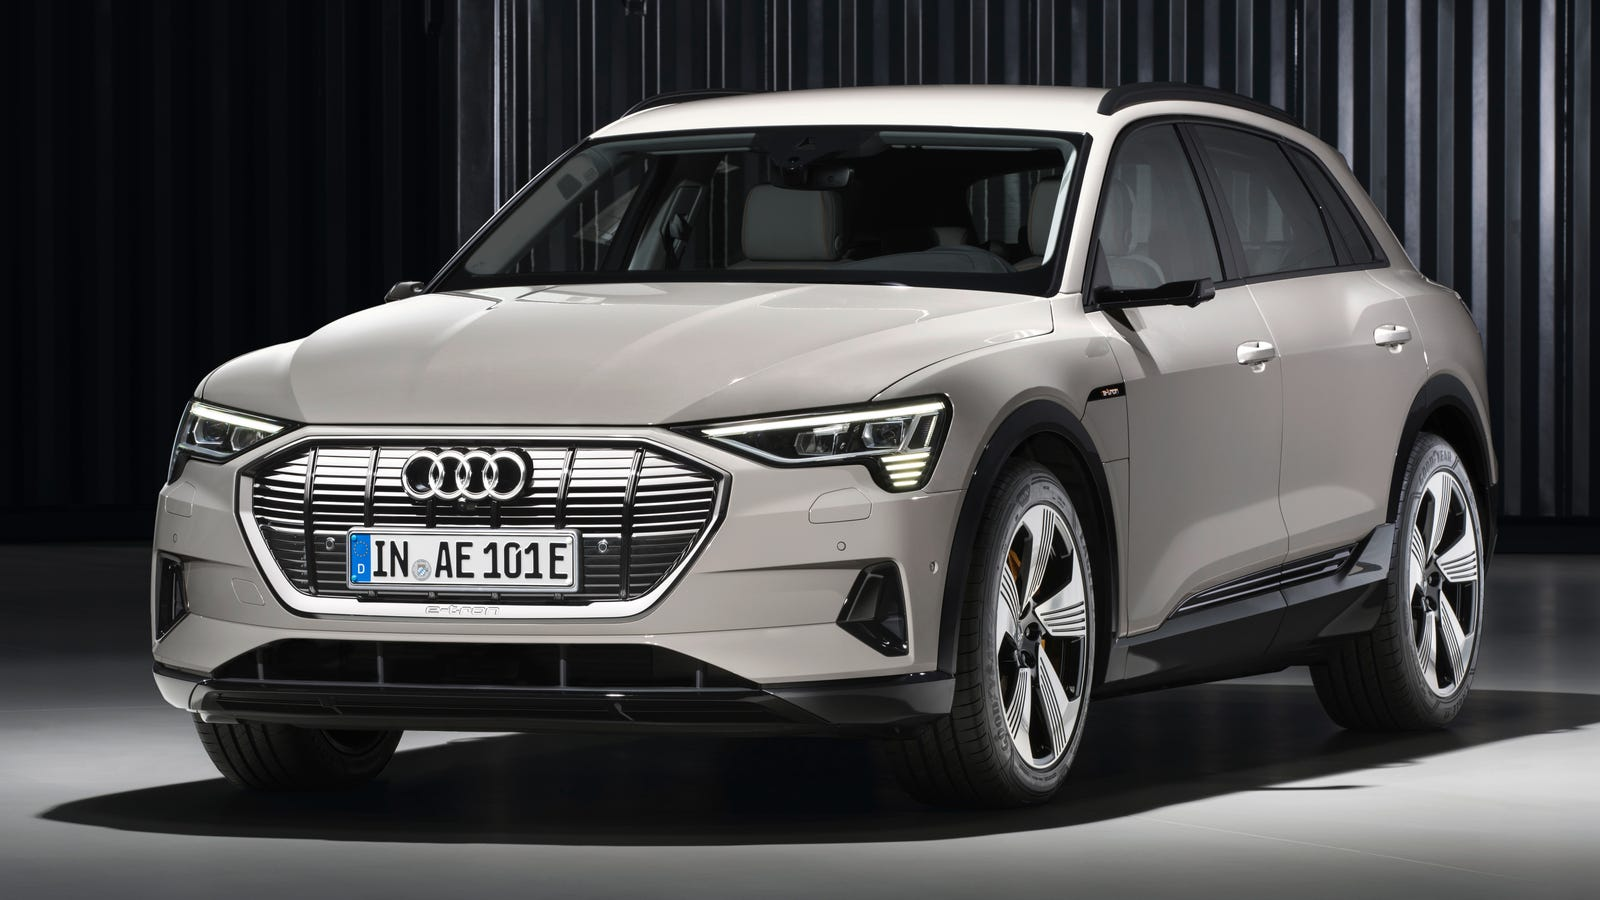 San Francisco Car Show >> The 2019 Audi E-Tron Is a $74,800 All-Electric SUV That Can Do 0-60 in 5.5 Seconds